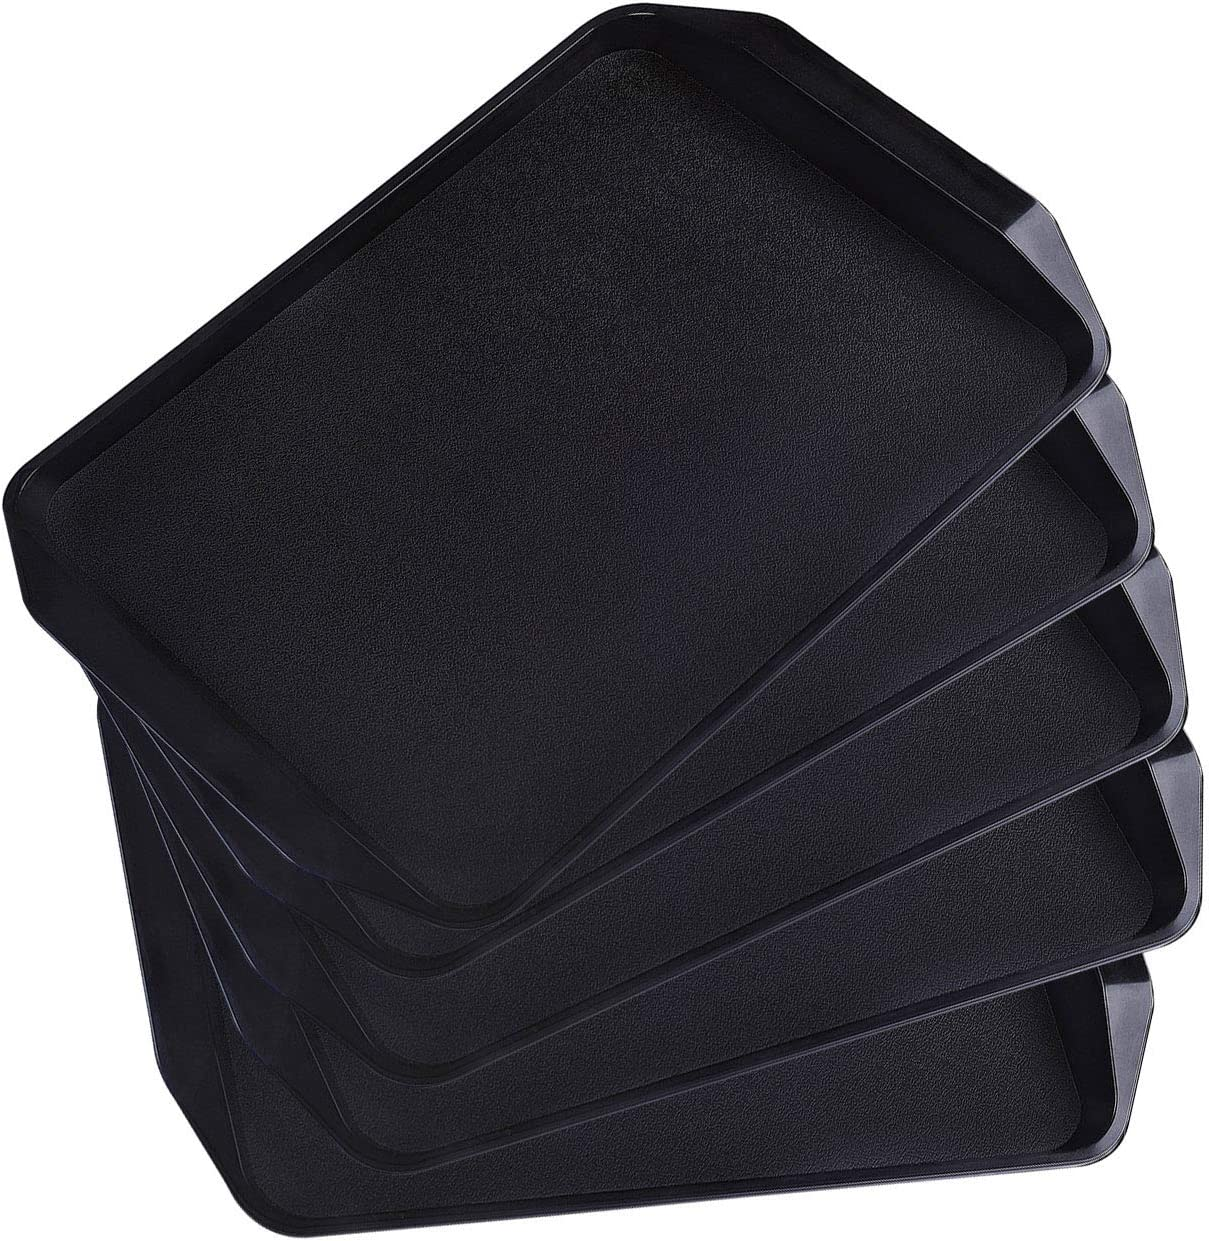 KPROE Serving Tray, Larger Square Non-Slip Plastic Trays Set of 5 Pack for Parties, Coffee Table, Breakfast (Black-5)